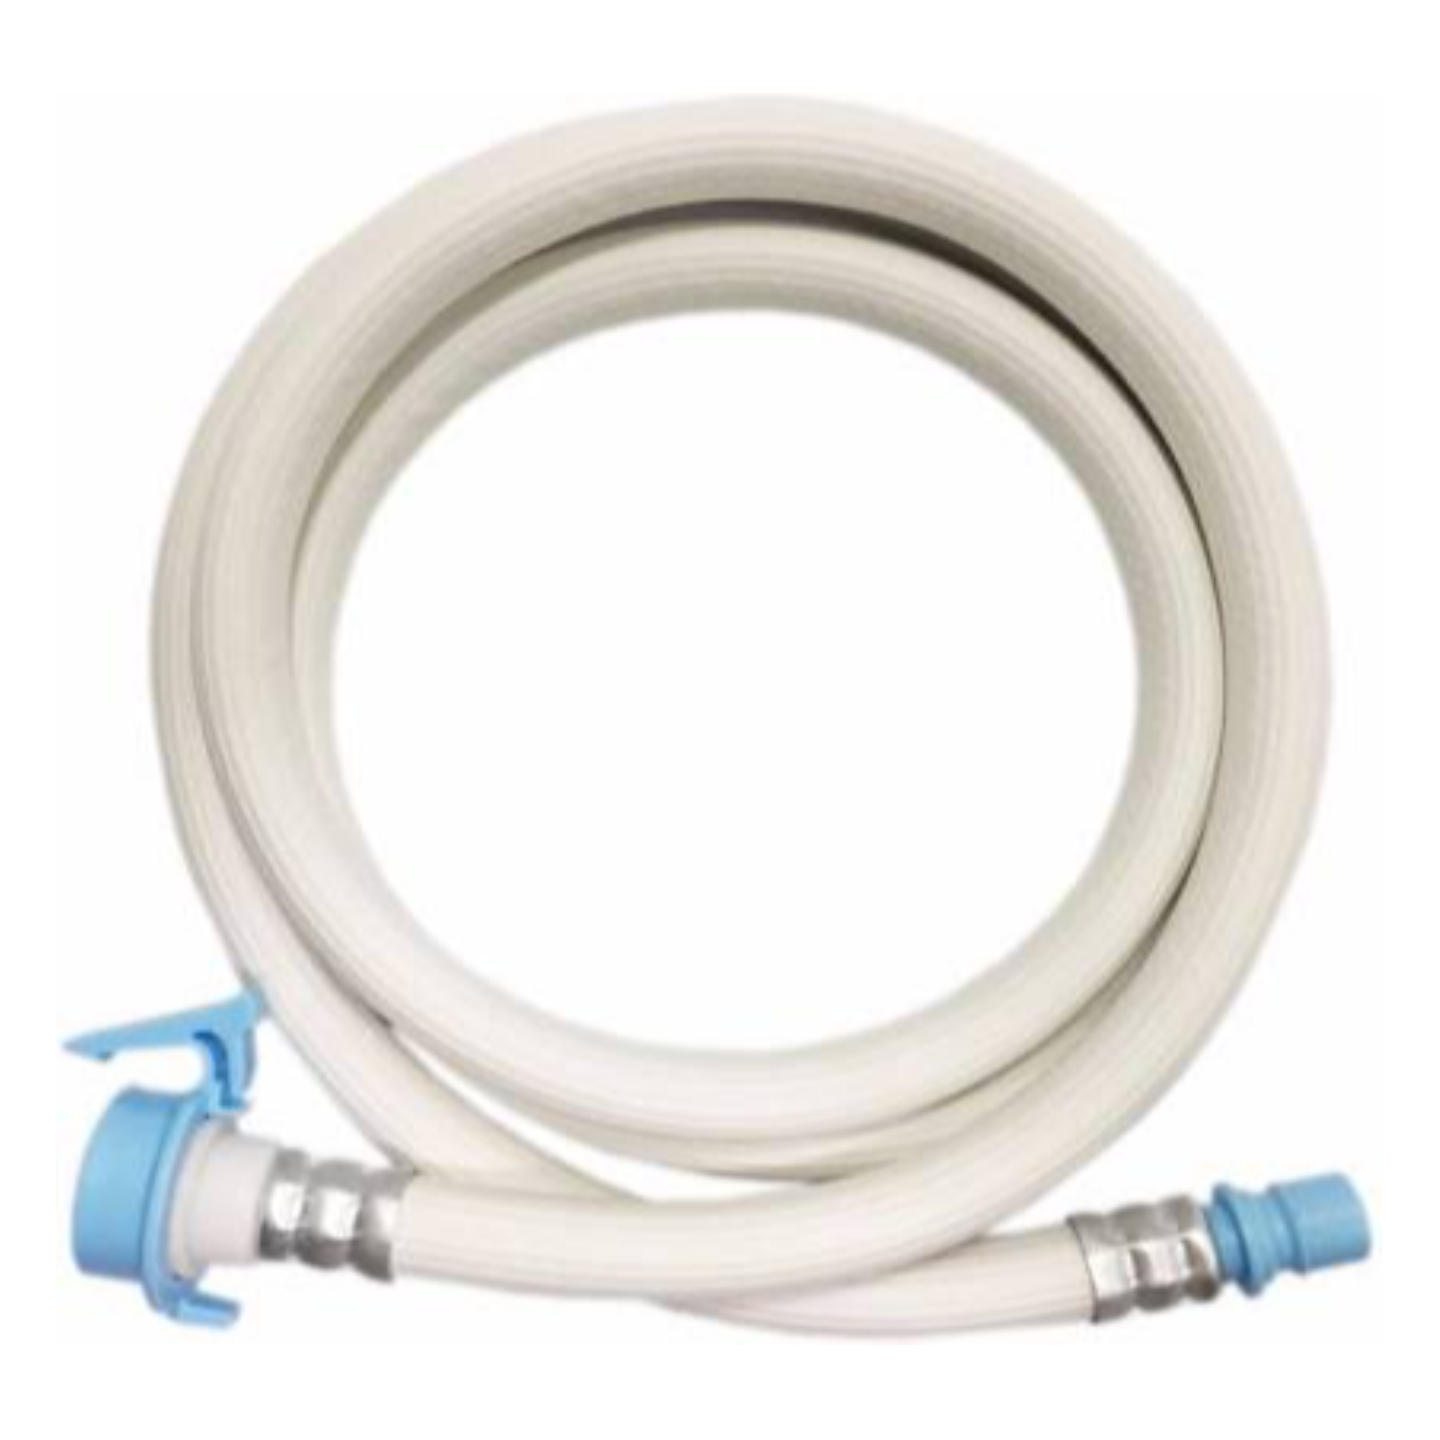 Croma Inlet Pipe For Washing Machine